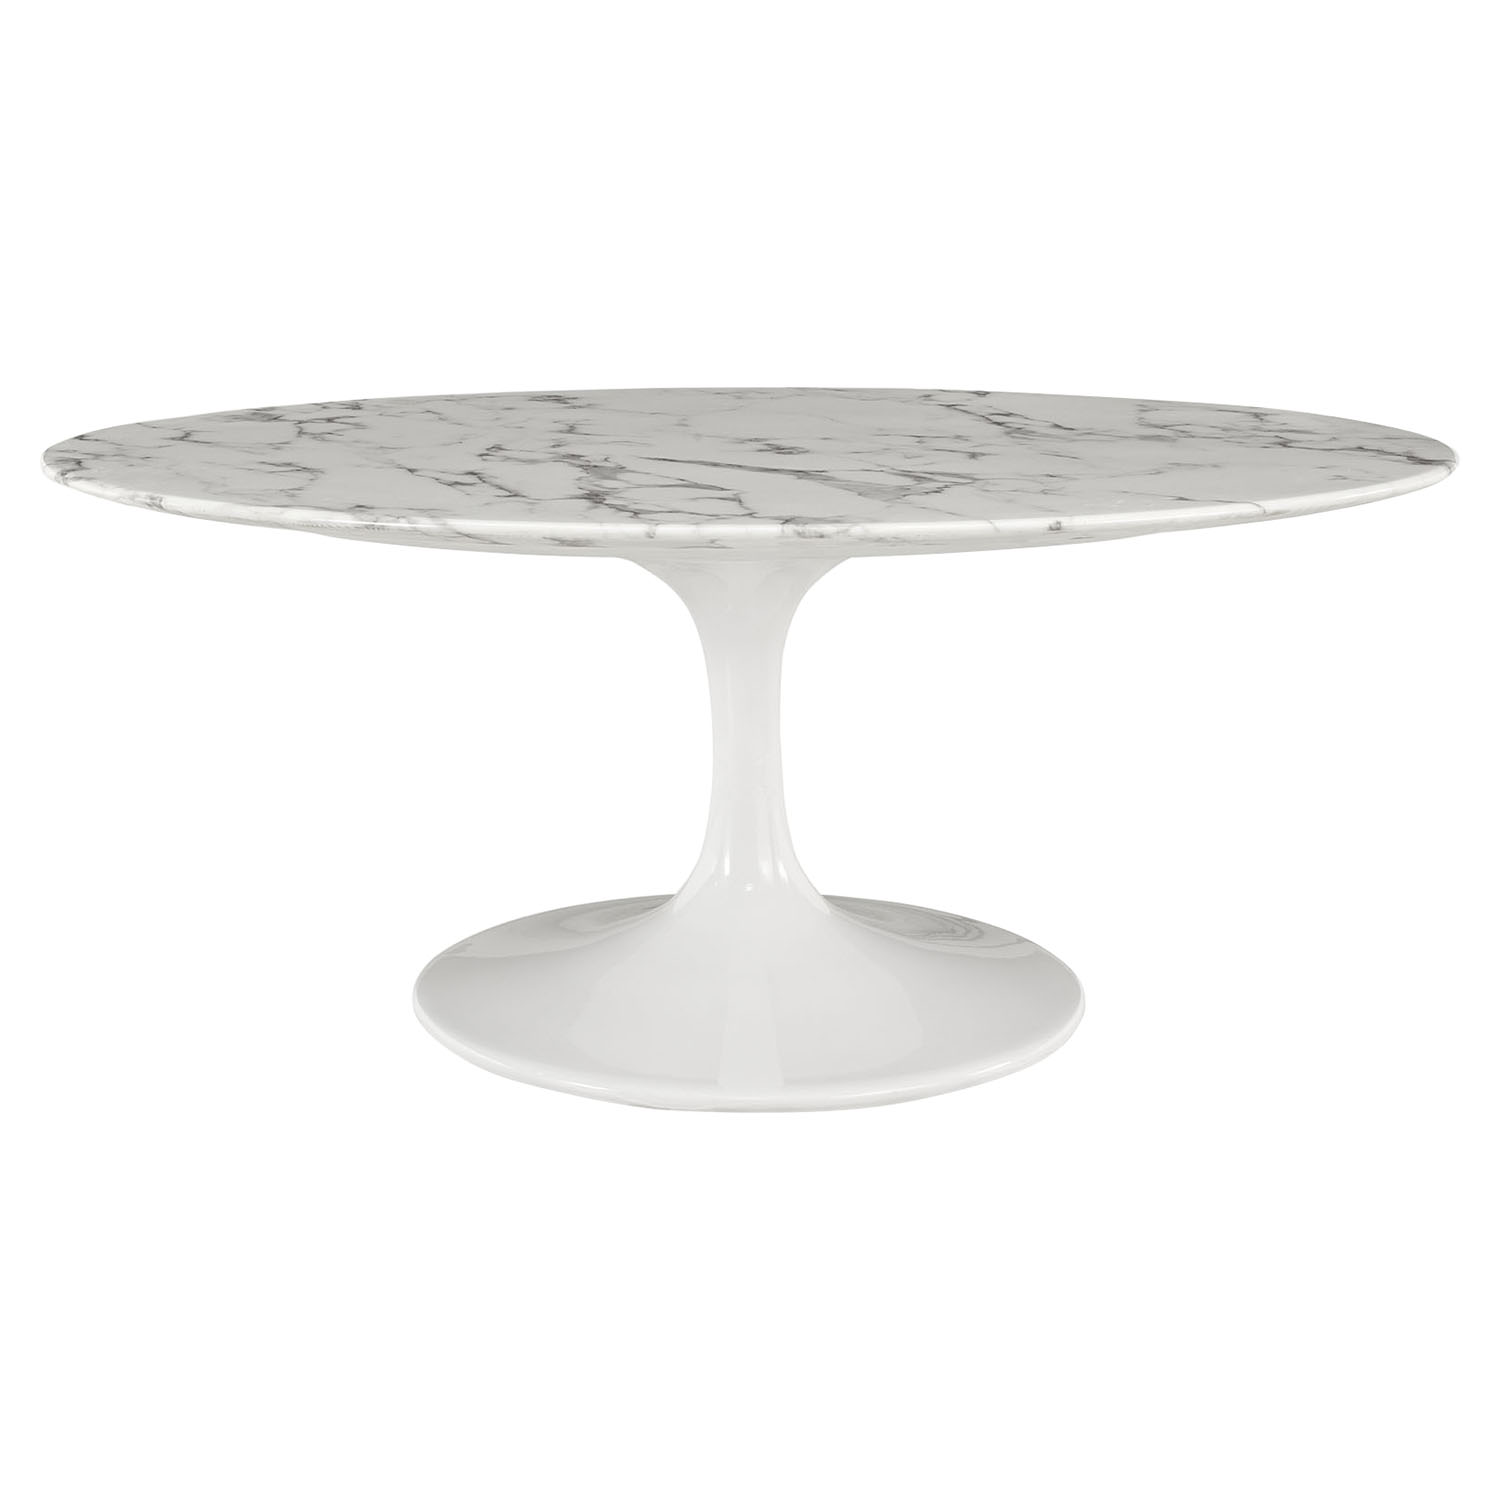 "Lippa 42"" Oval Shaped Coffee Table - Artificial Marble Top"